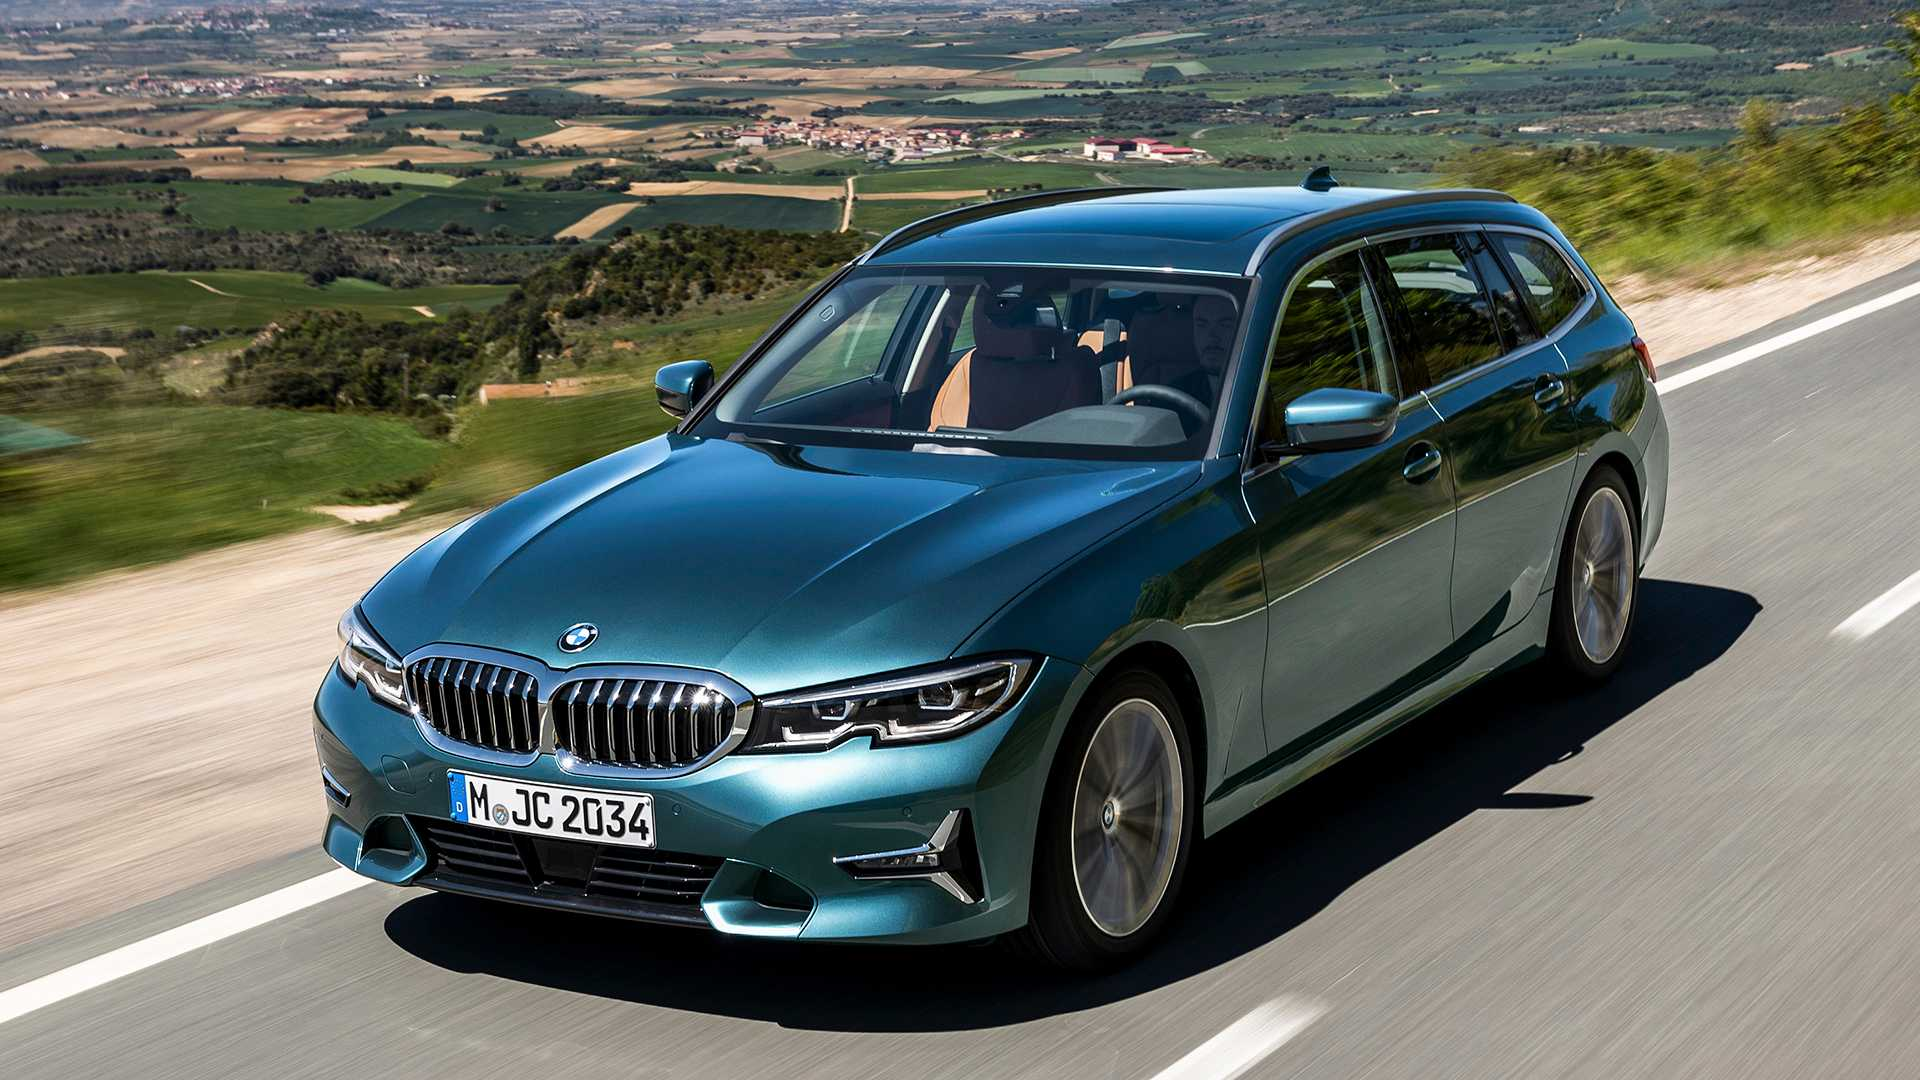 2020 BMW 3 Series Touring Debuts Its Long Roof Lines For Euro Buyers